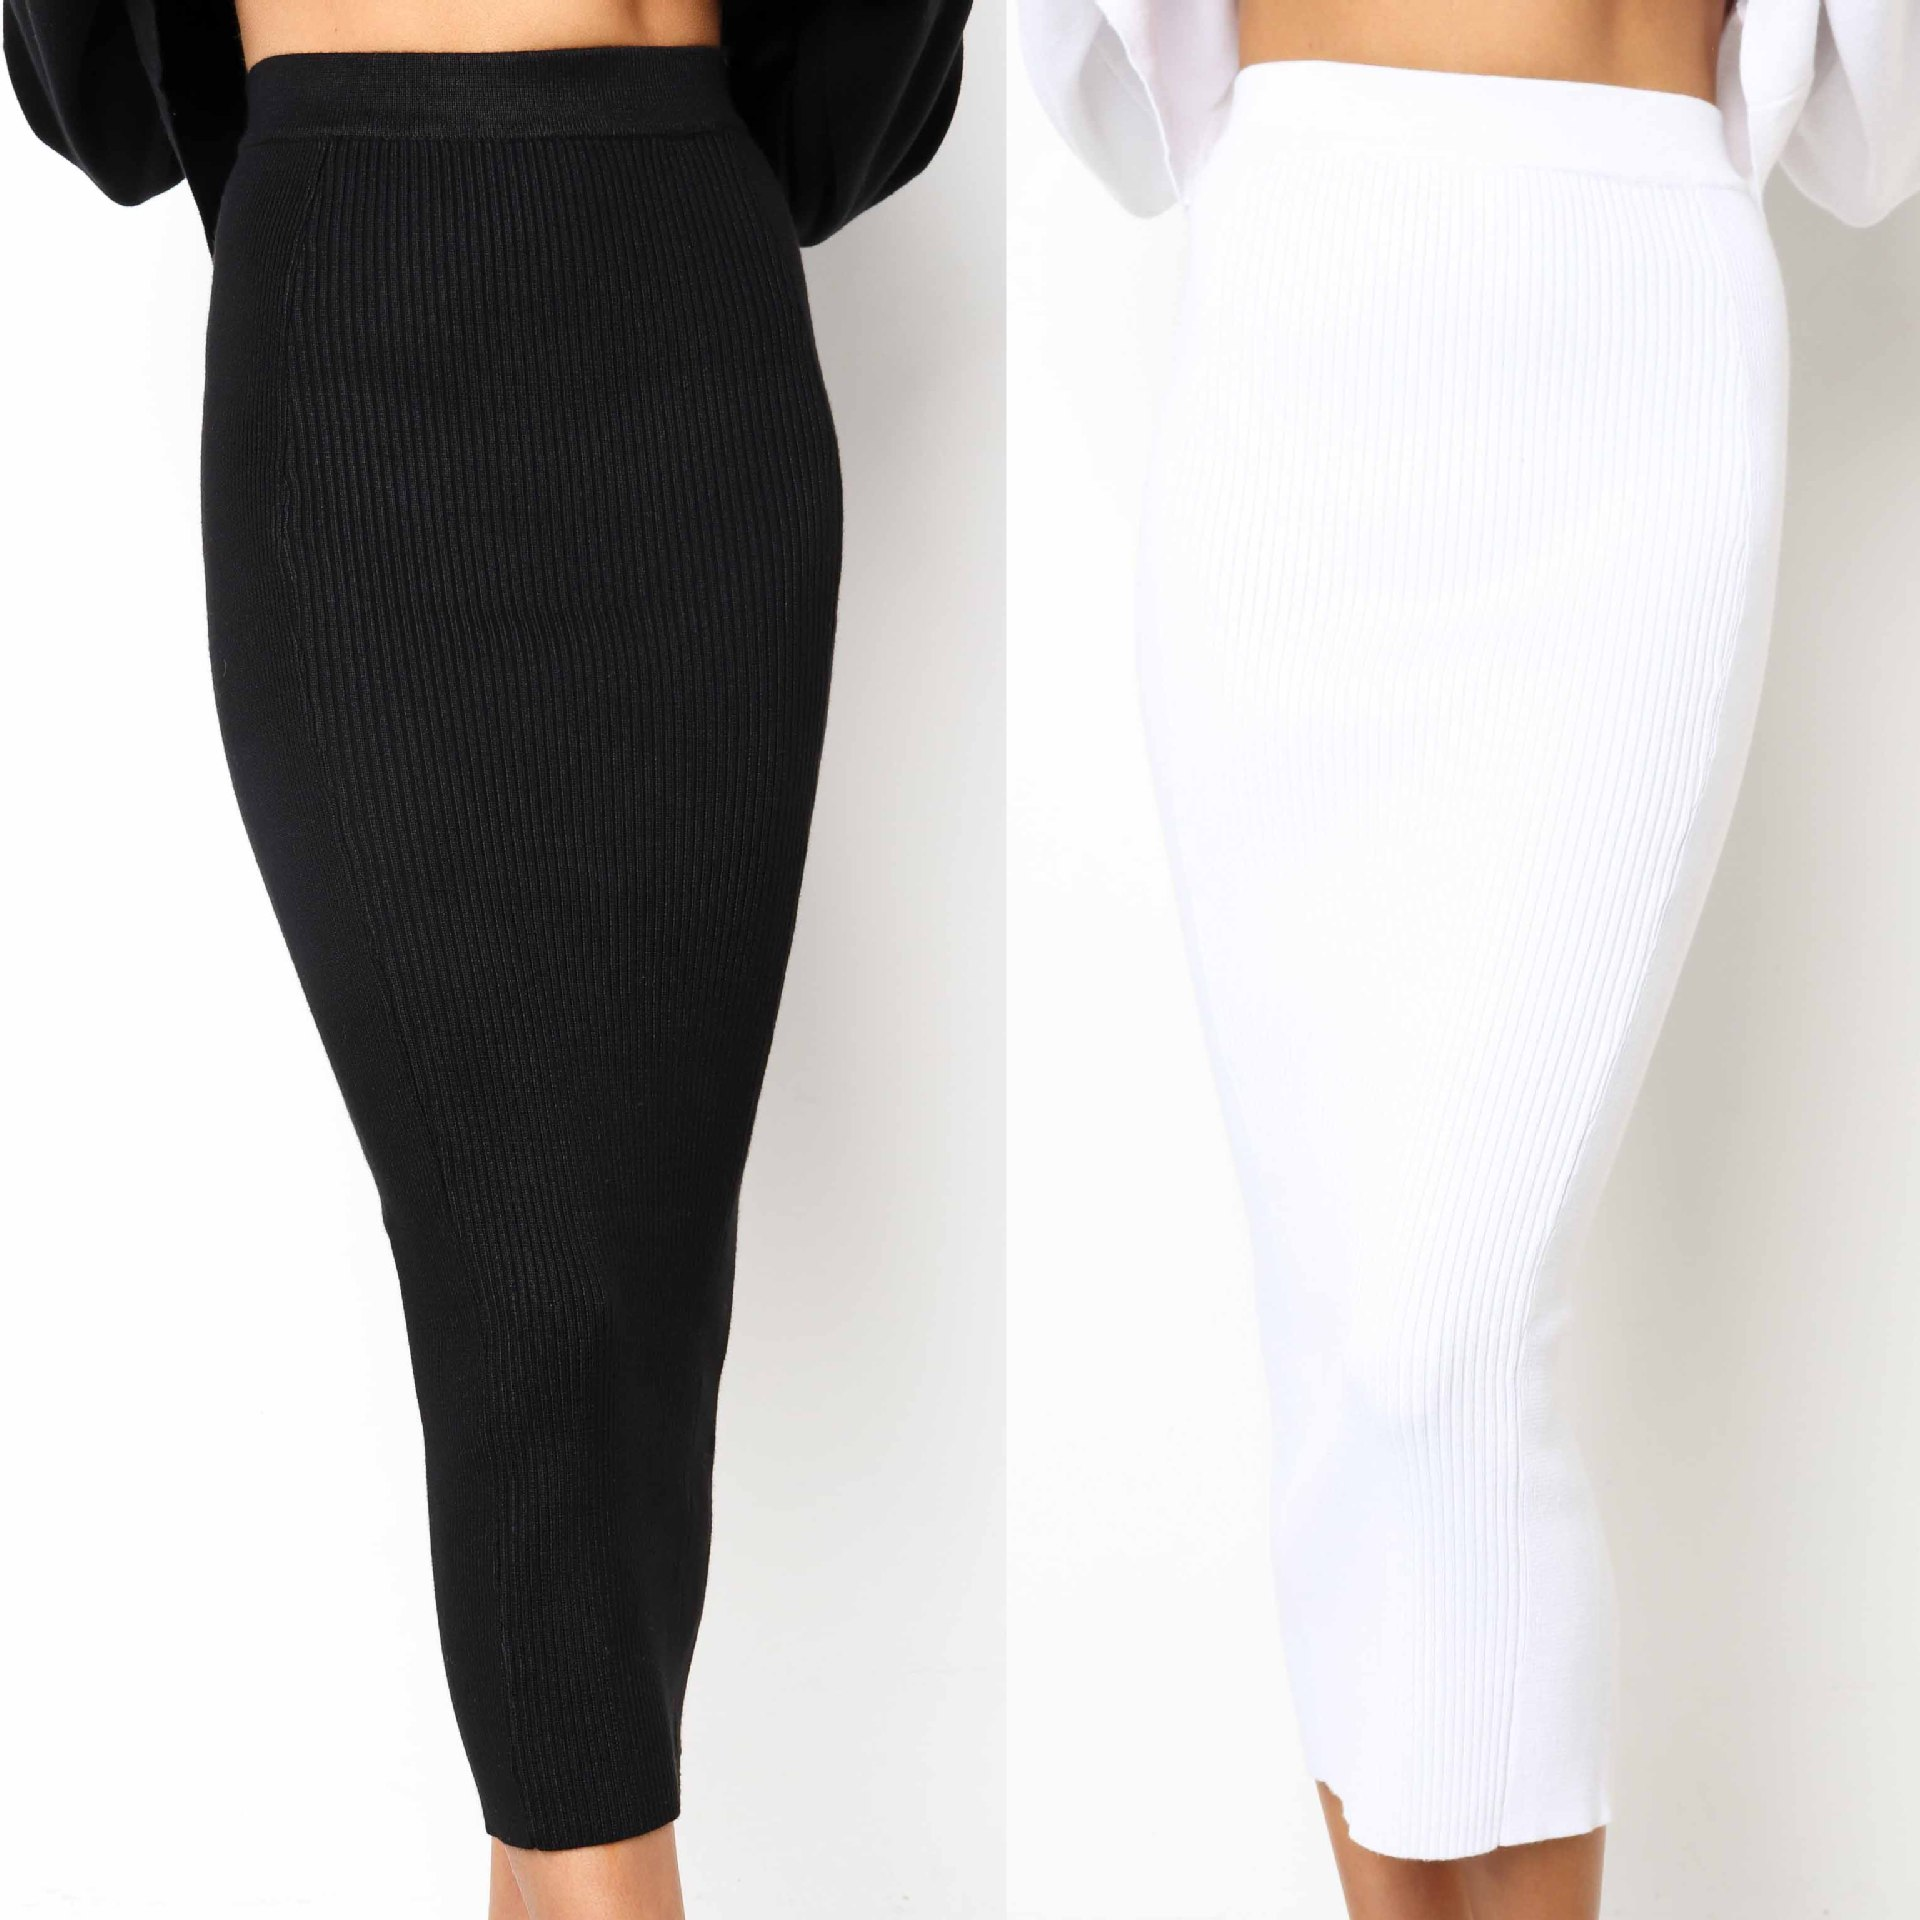 Oufisun Autumn Knitted Sexy Back White Skirt High Waist Tight Women's Elegant Long Skir Party Club Maxi Wear Pencil Skirts